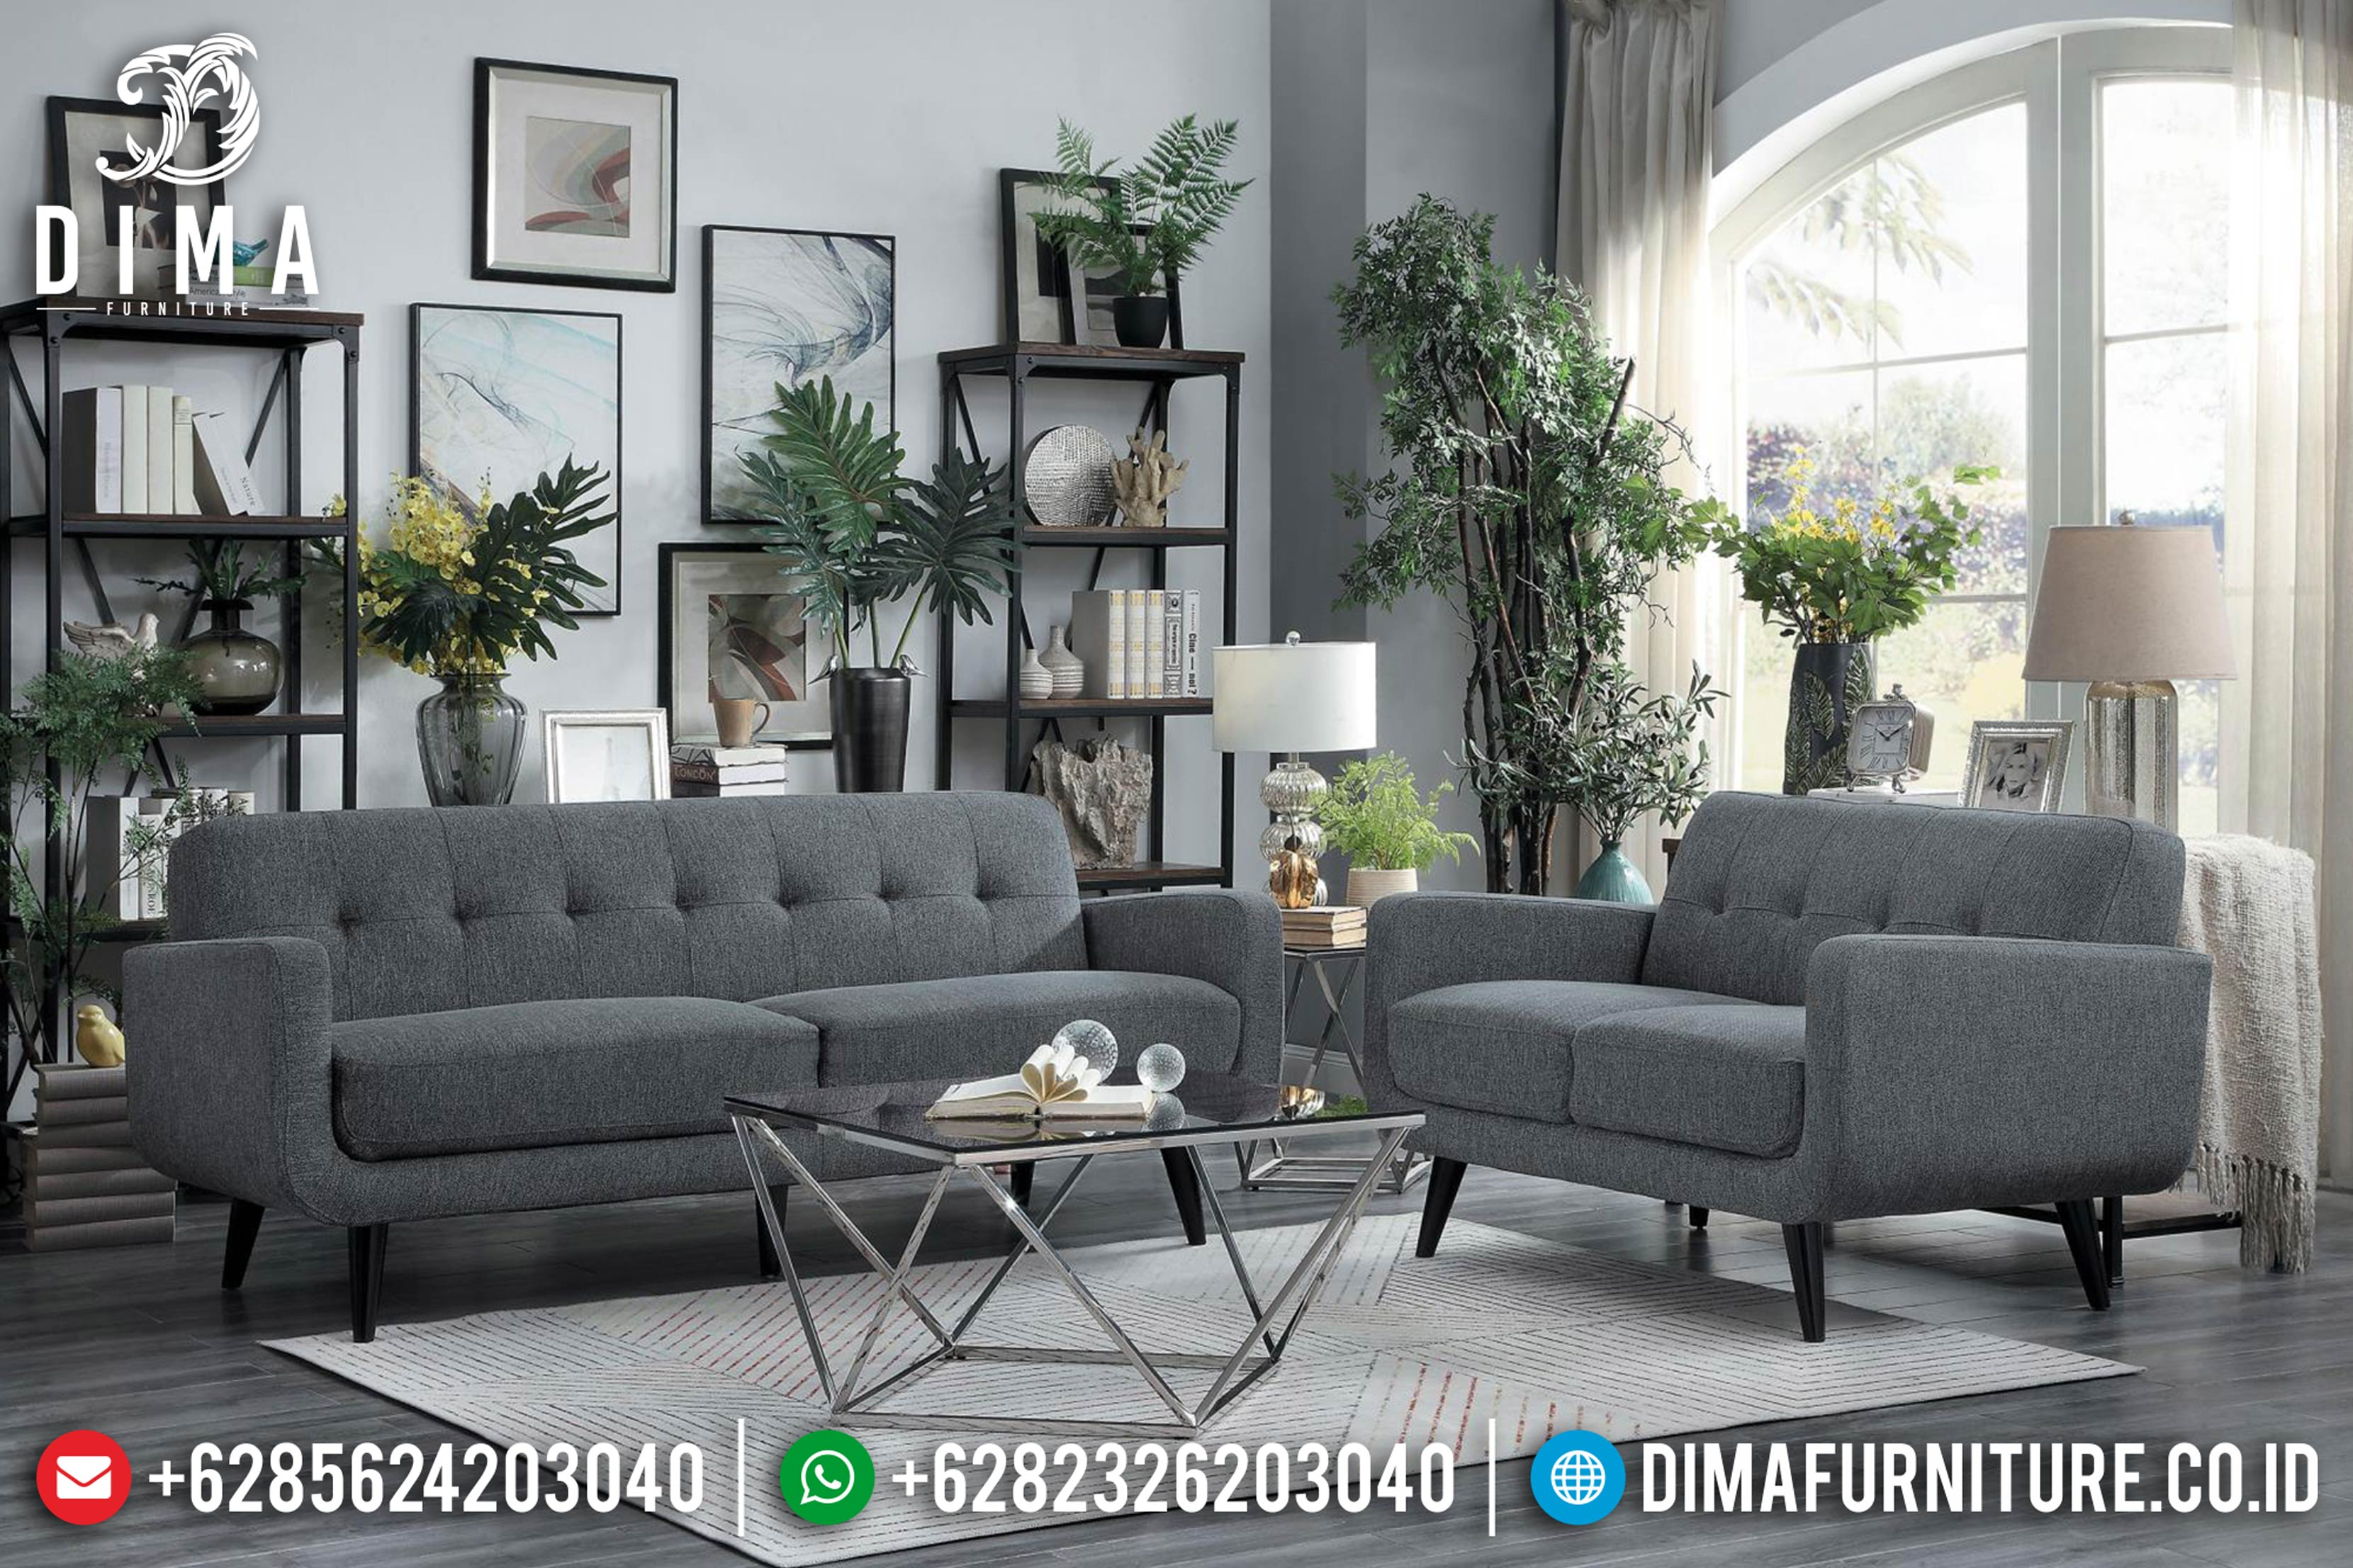 Model Sofa Tamu Jepara 2019-2020 015 Dima Furniture Jepara